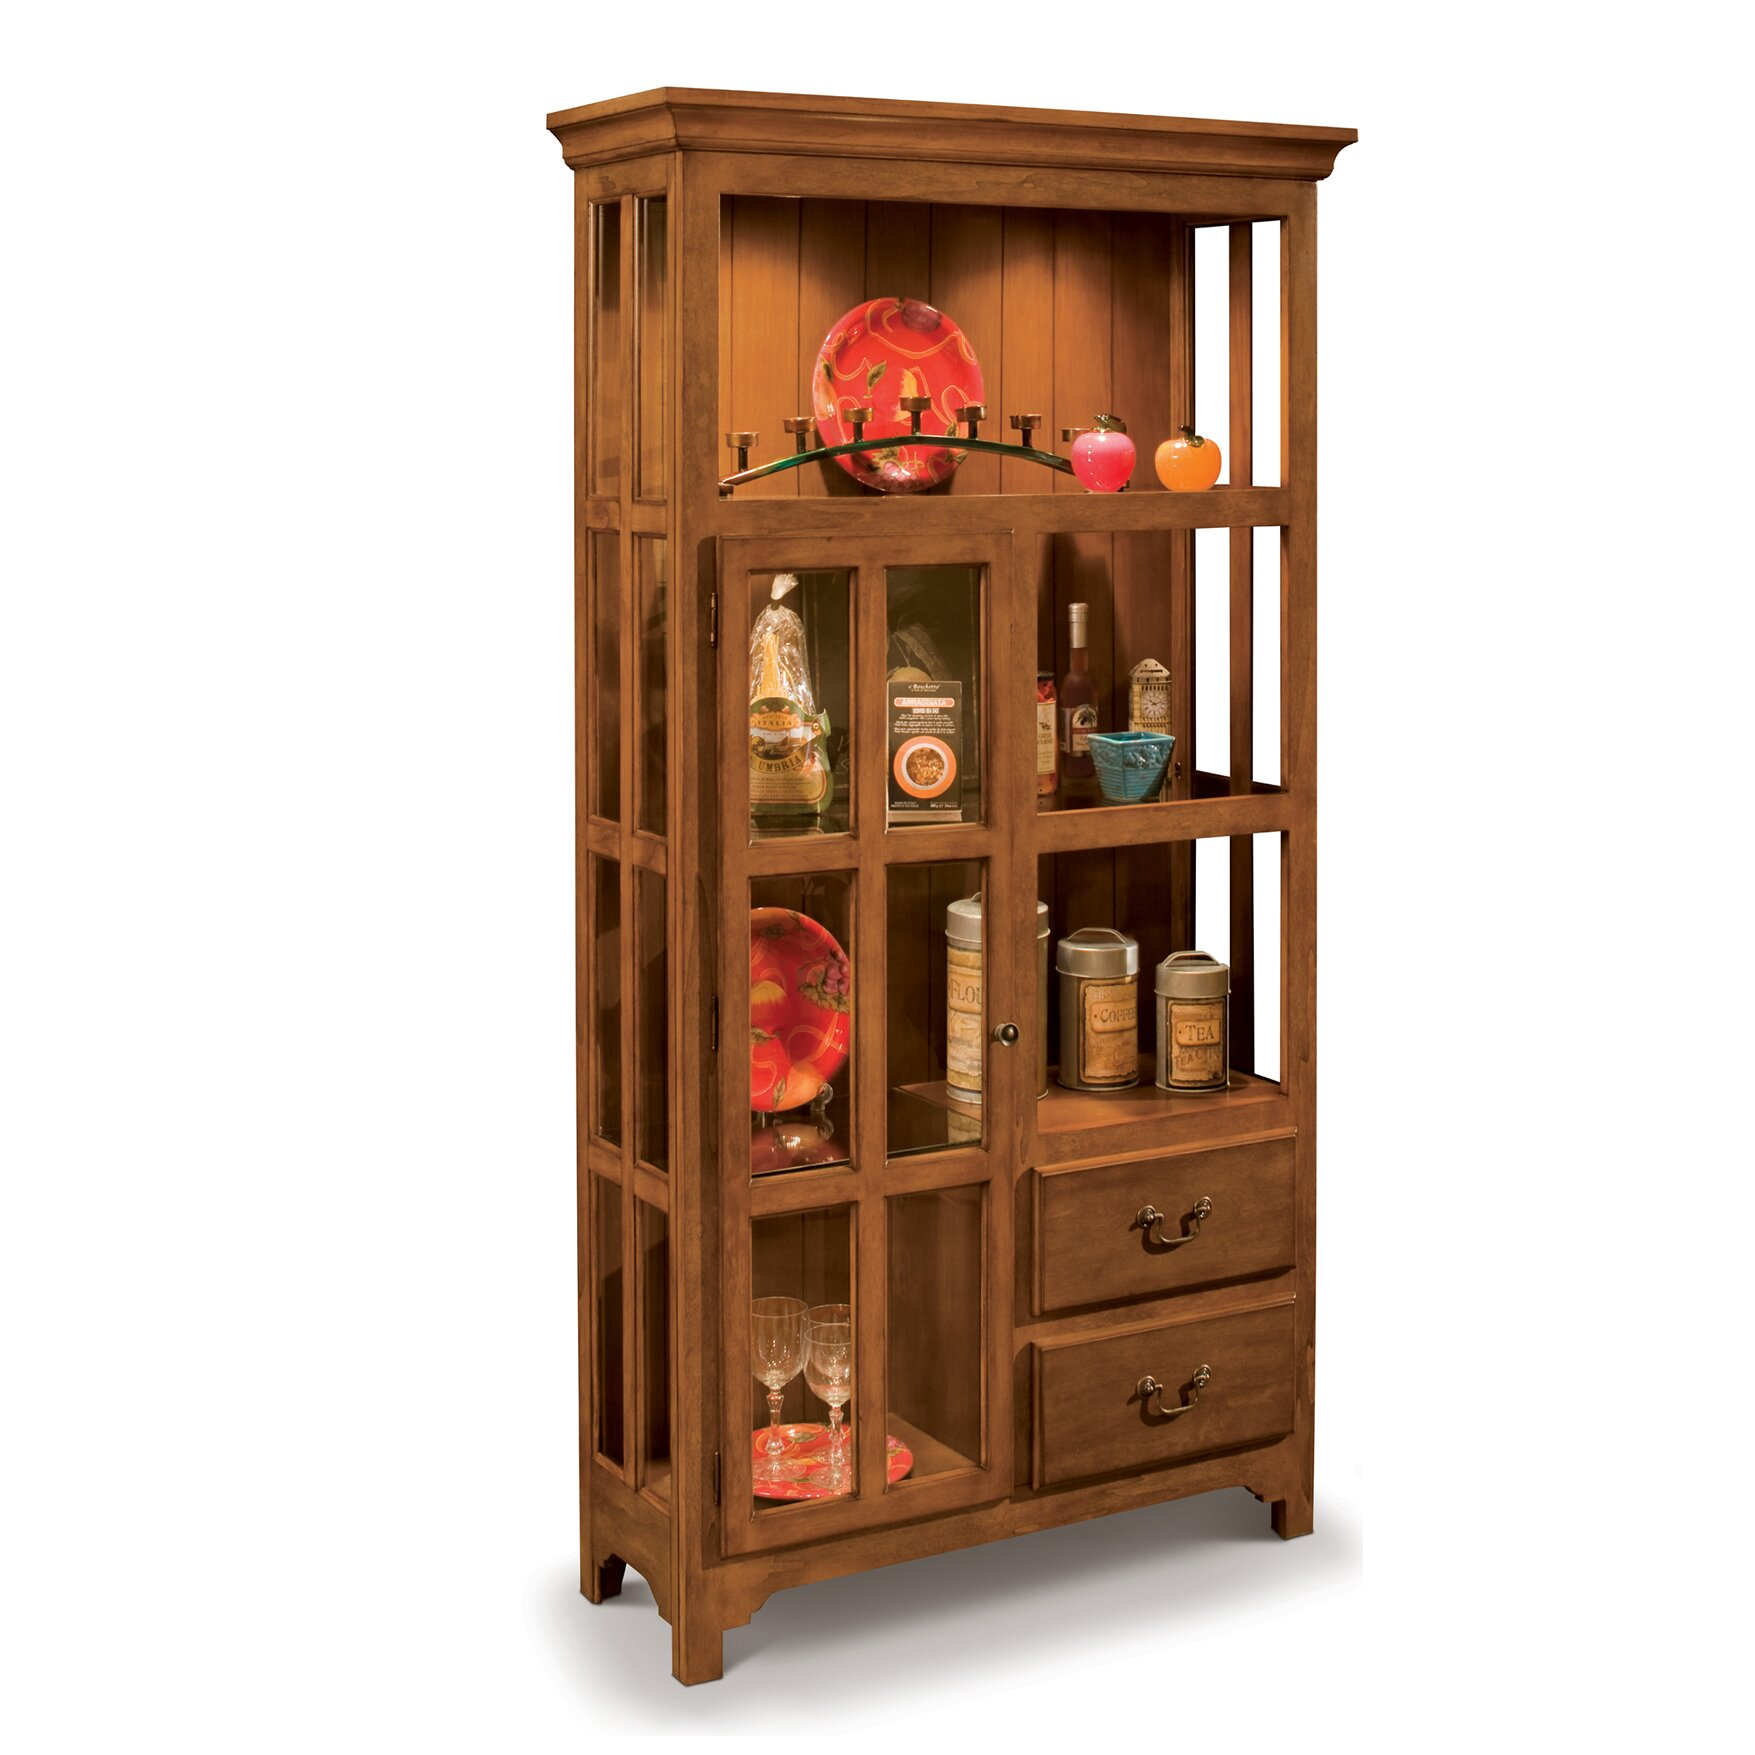 Philip reinisch co colortime solid wood curio display for Solid wood cabinets company reviews